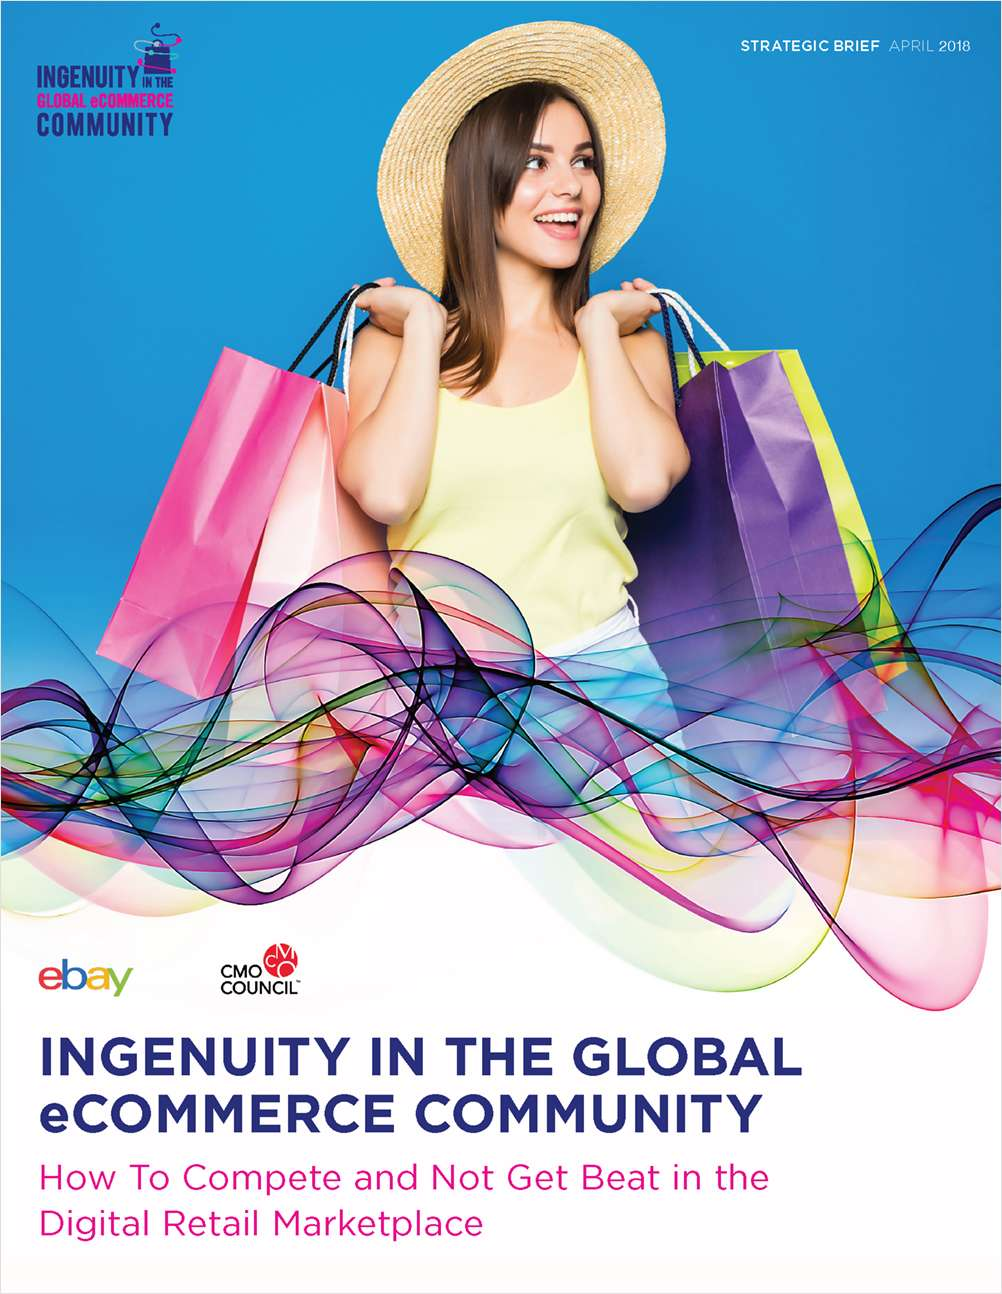 Ingenuity In The Global eCommerce Community - How To Compete and Not Get Beat in the Digital Retail Marketplace